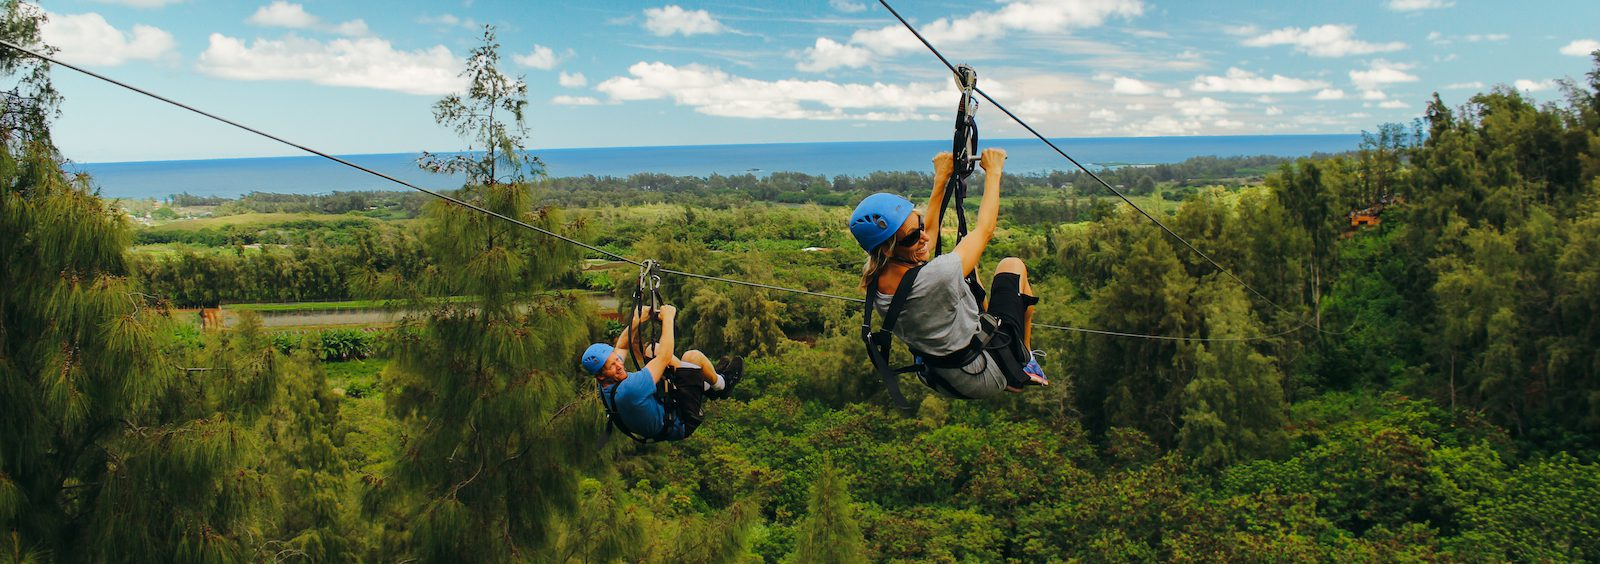 What to Expect When You Go Ziplining on Oahu for the First Time